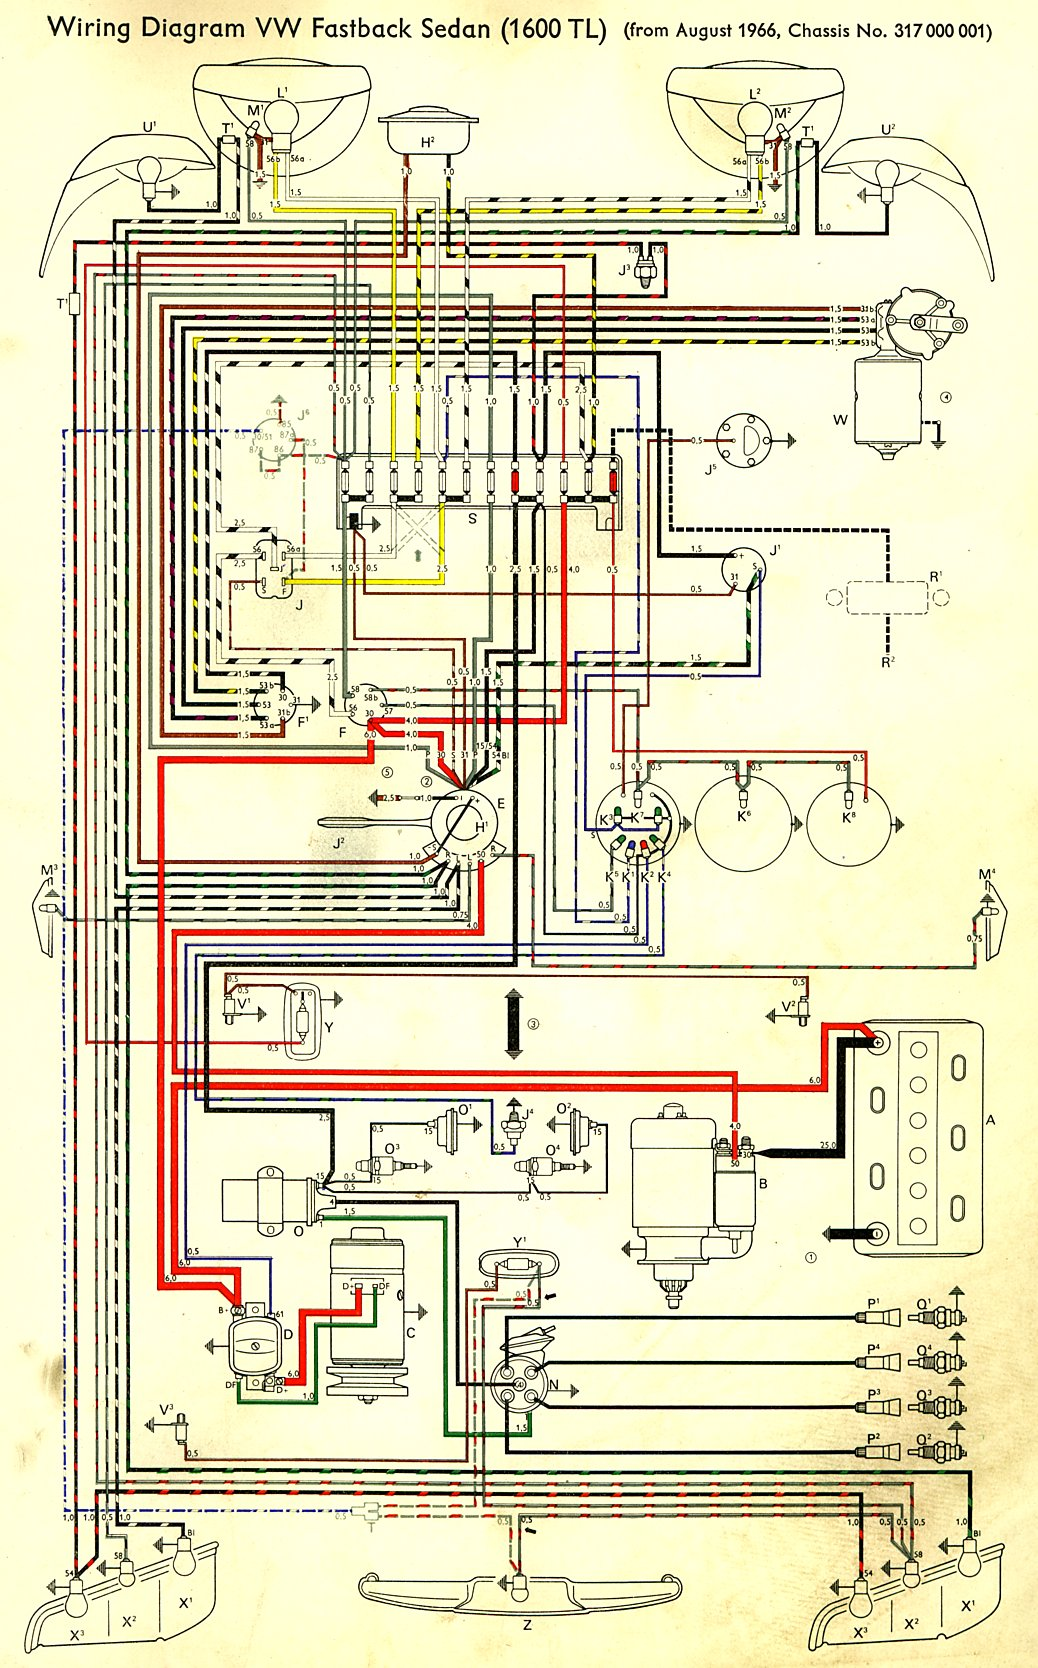 1973 vw type 3 wiring diagram online schematic diagram u2022 rh holyoak co 1971 vw bus wiring diagram 1971 vw bus wiring diagram pdf